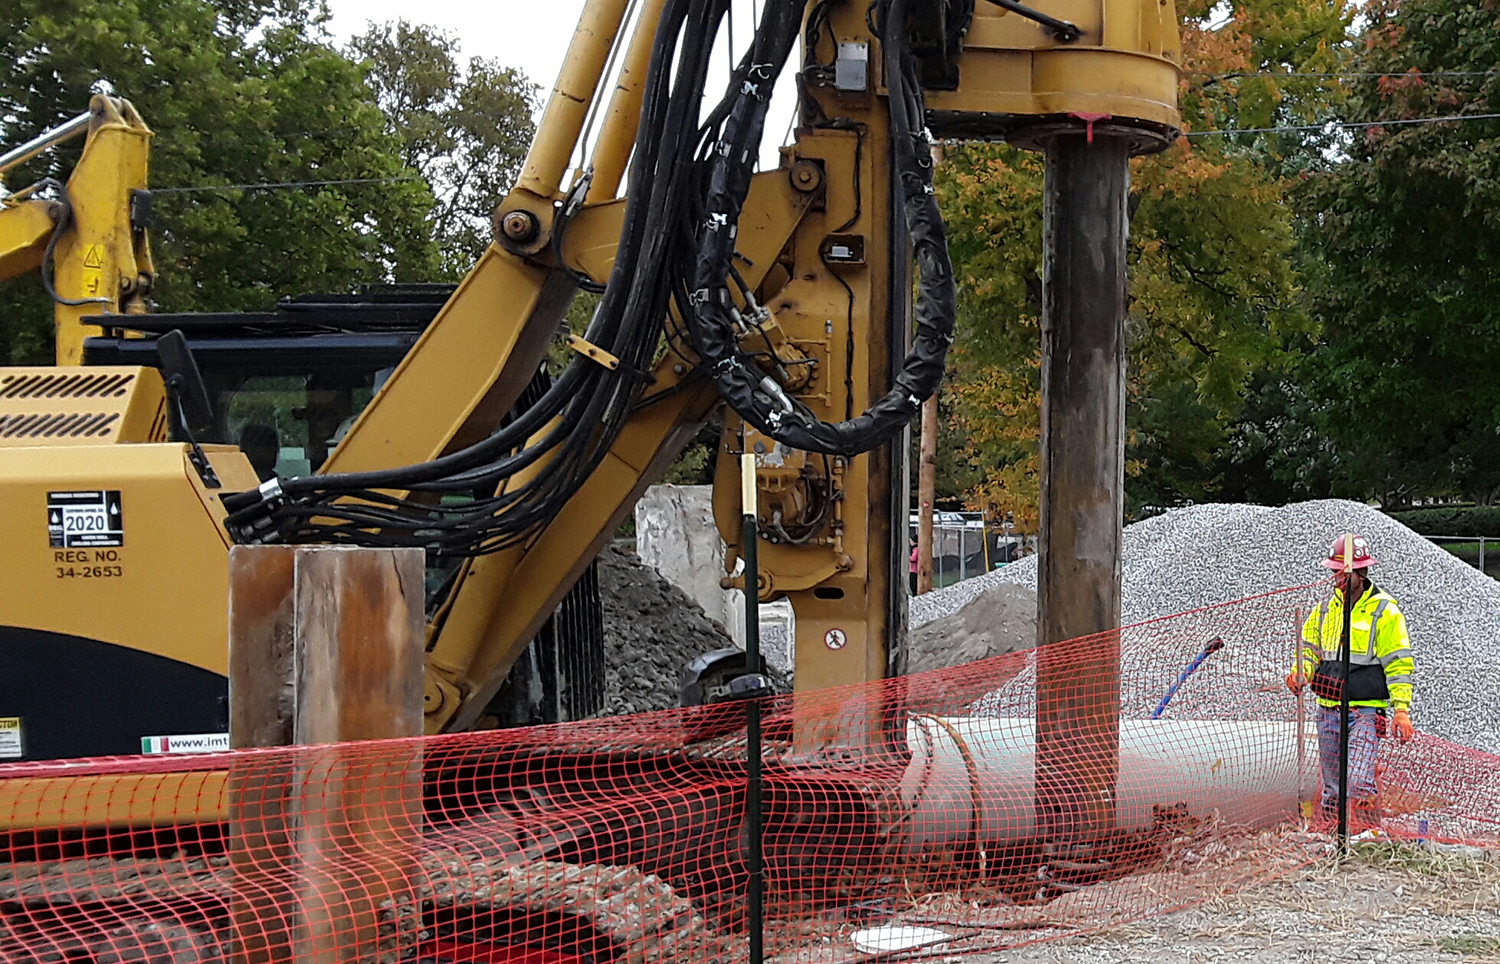 2019 10 16 RS Contract Dewatering Services drill hole for H Pile at 934 AM on north side of site